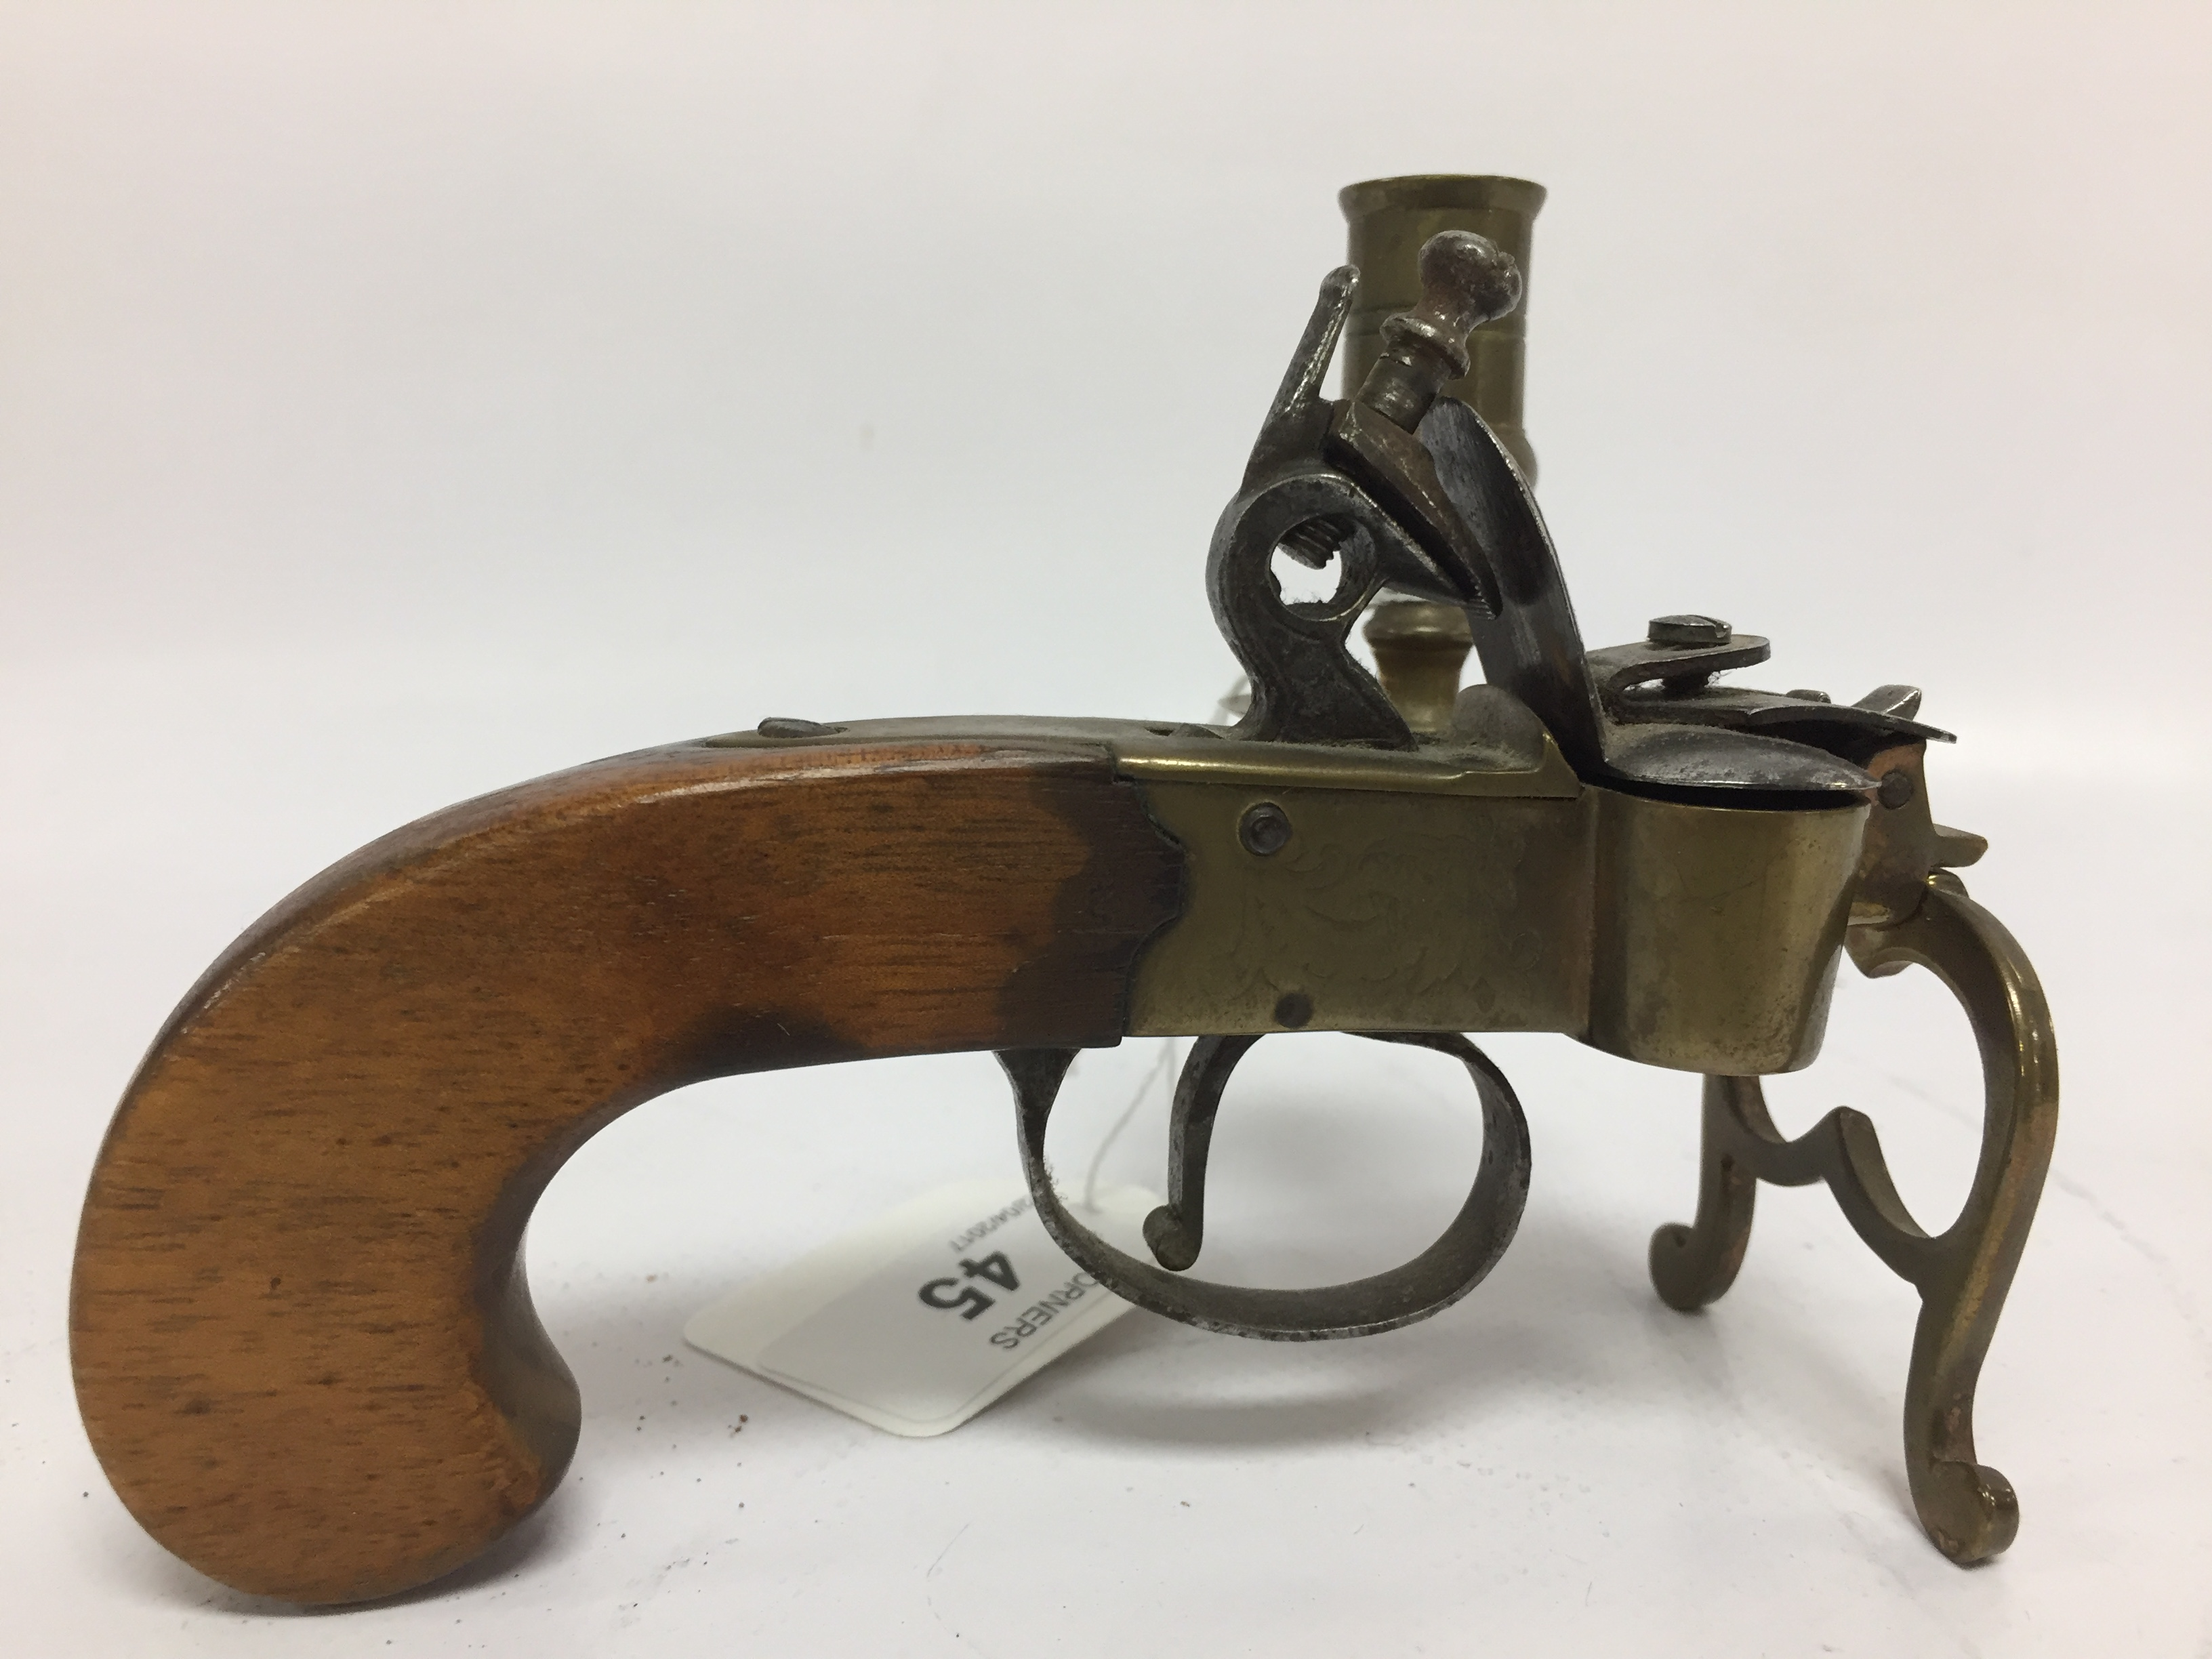 Lot 44 - AN ANTIQUE FLINTLOCK PISTOL TINDER LIGHTER